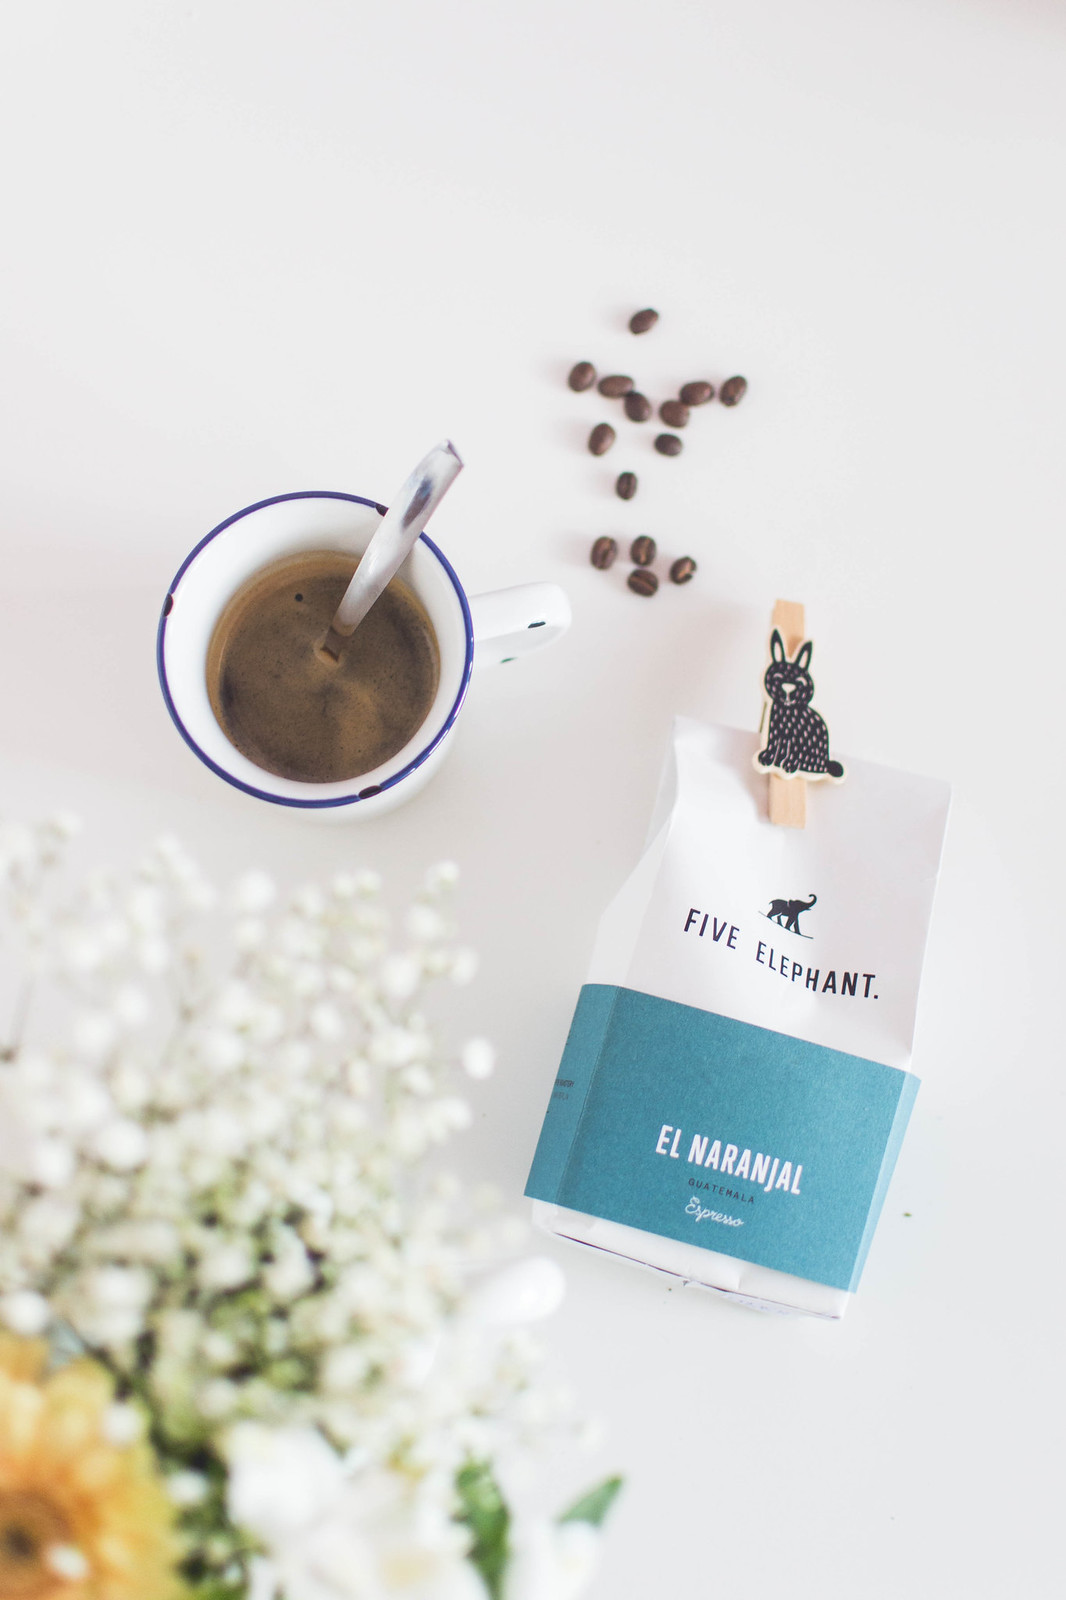 Five Elephant espresso coffee